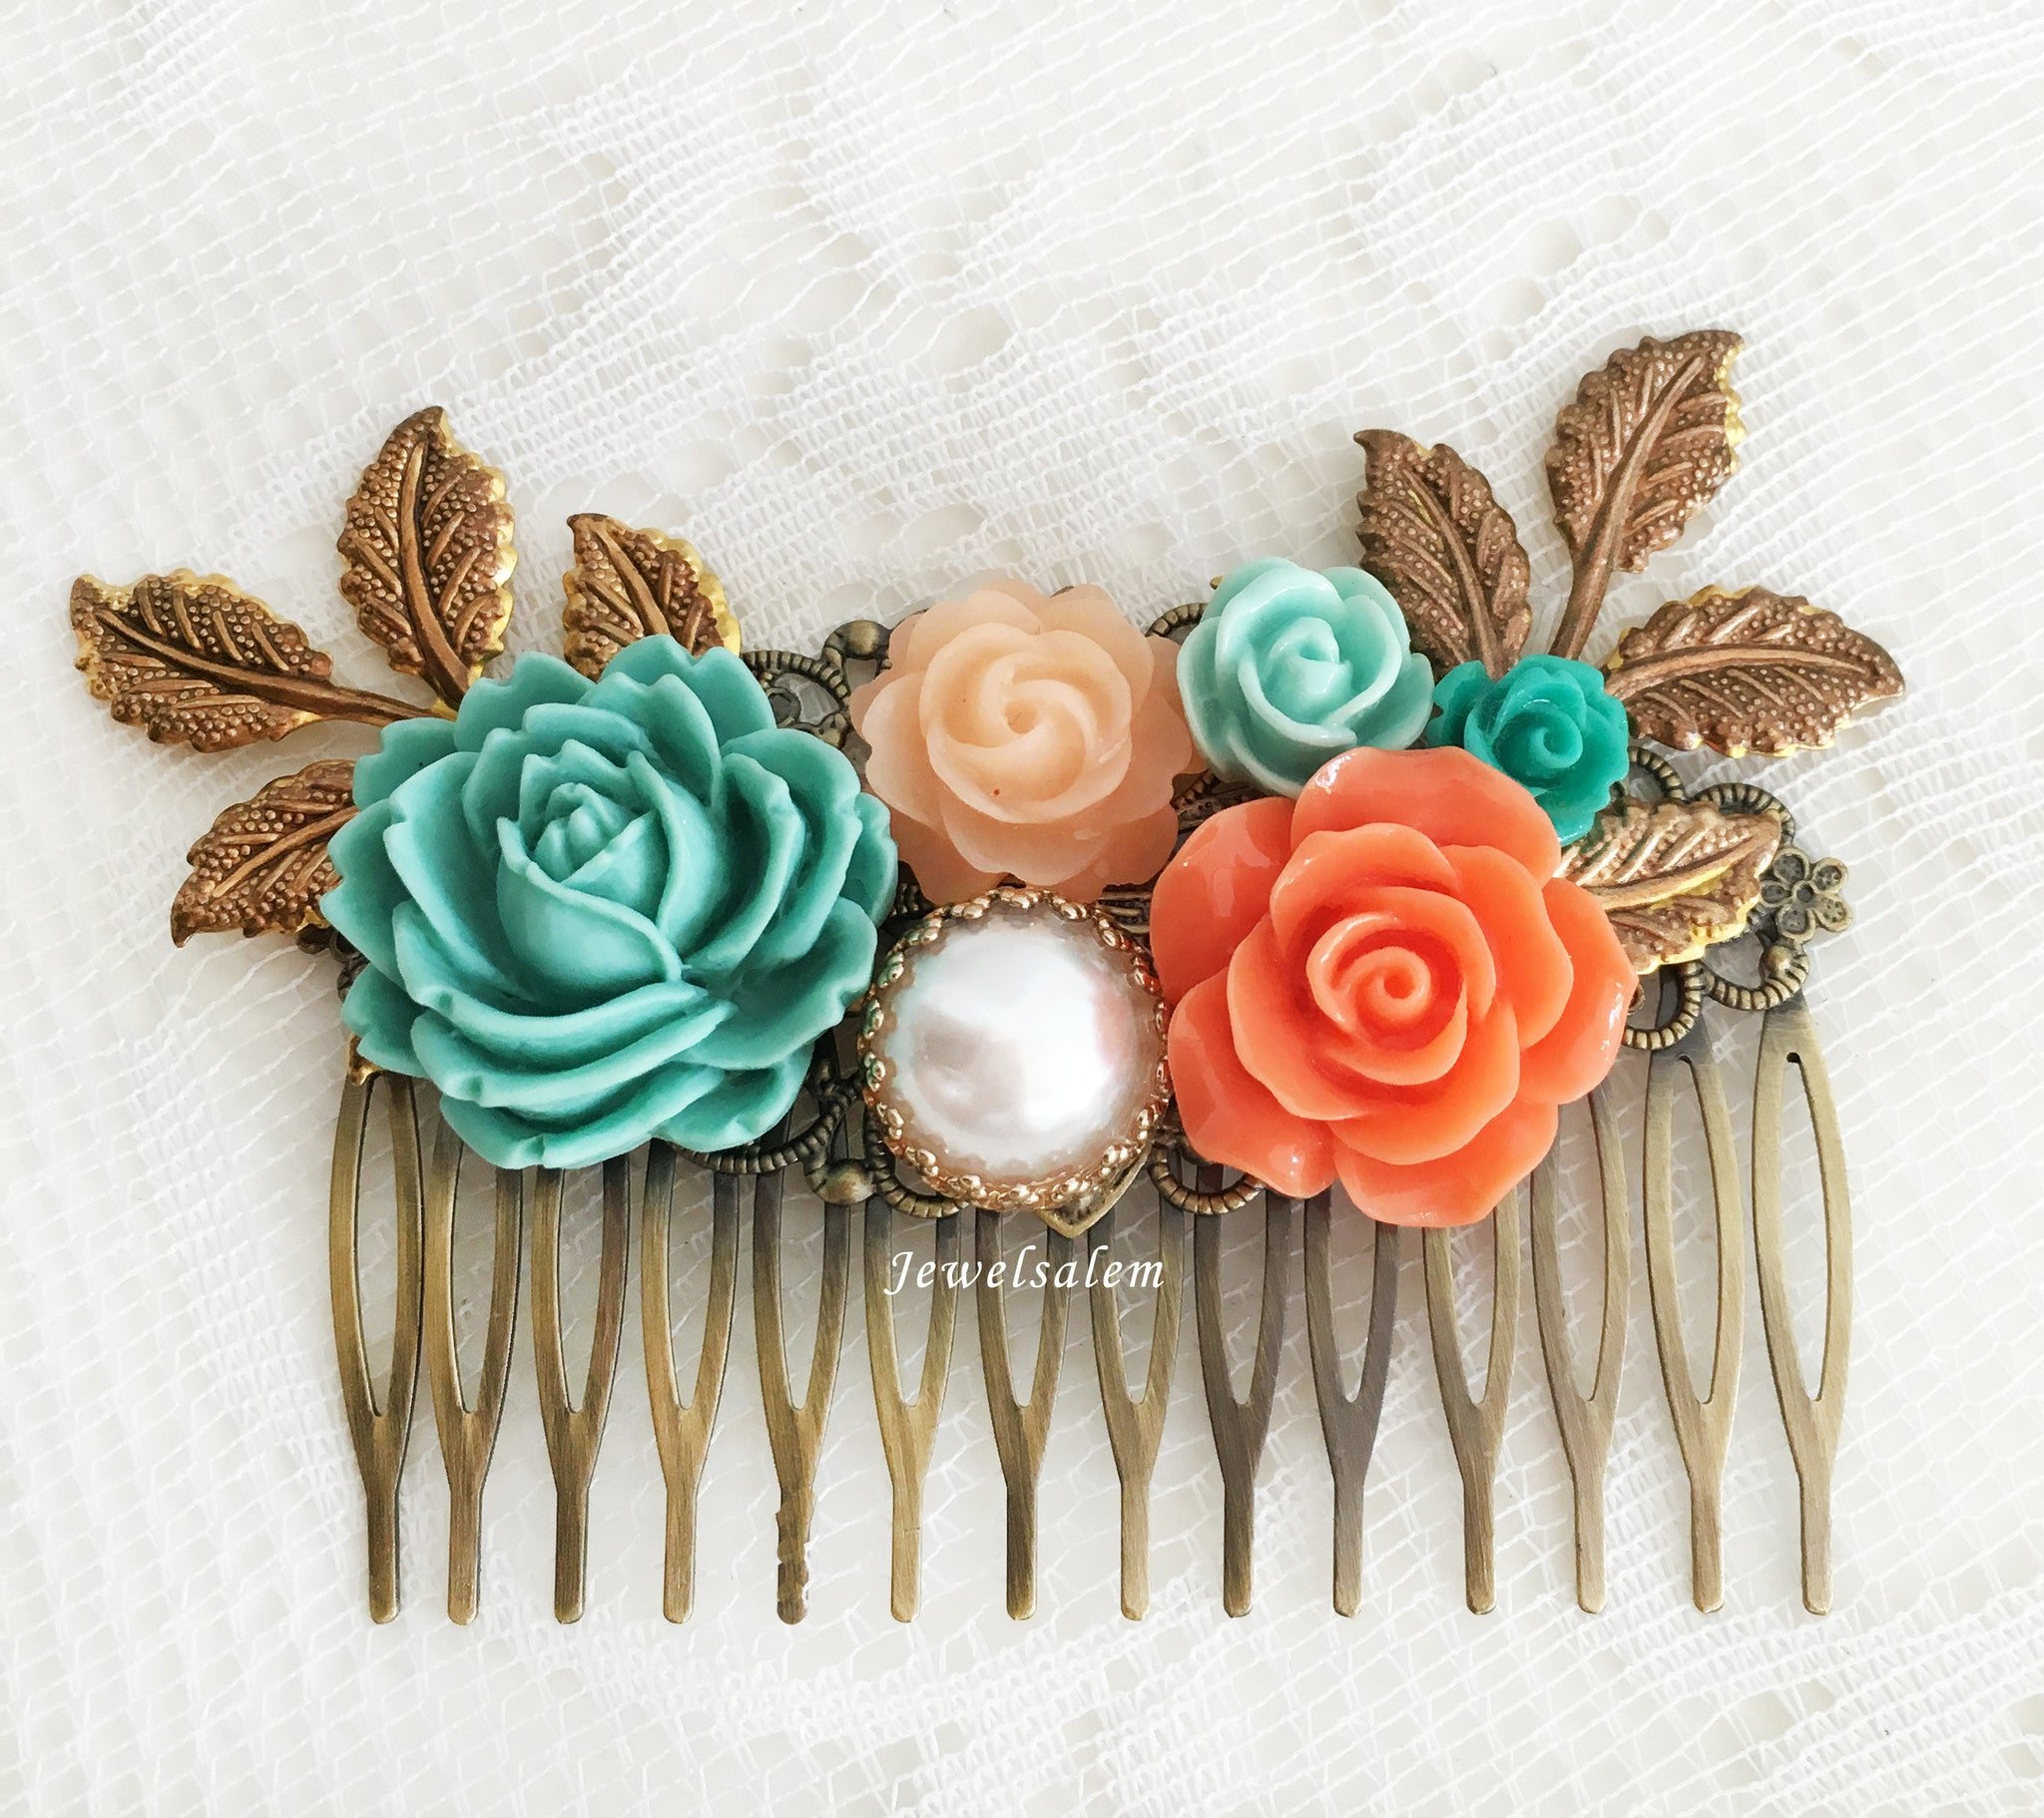 Turquoise Coral Peach Orange Teal Bridal Hair Comb Vintage Romantic Wedding Hair Accessories - Jewelsalem